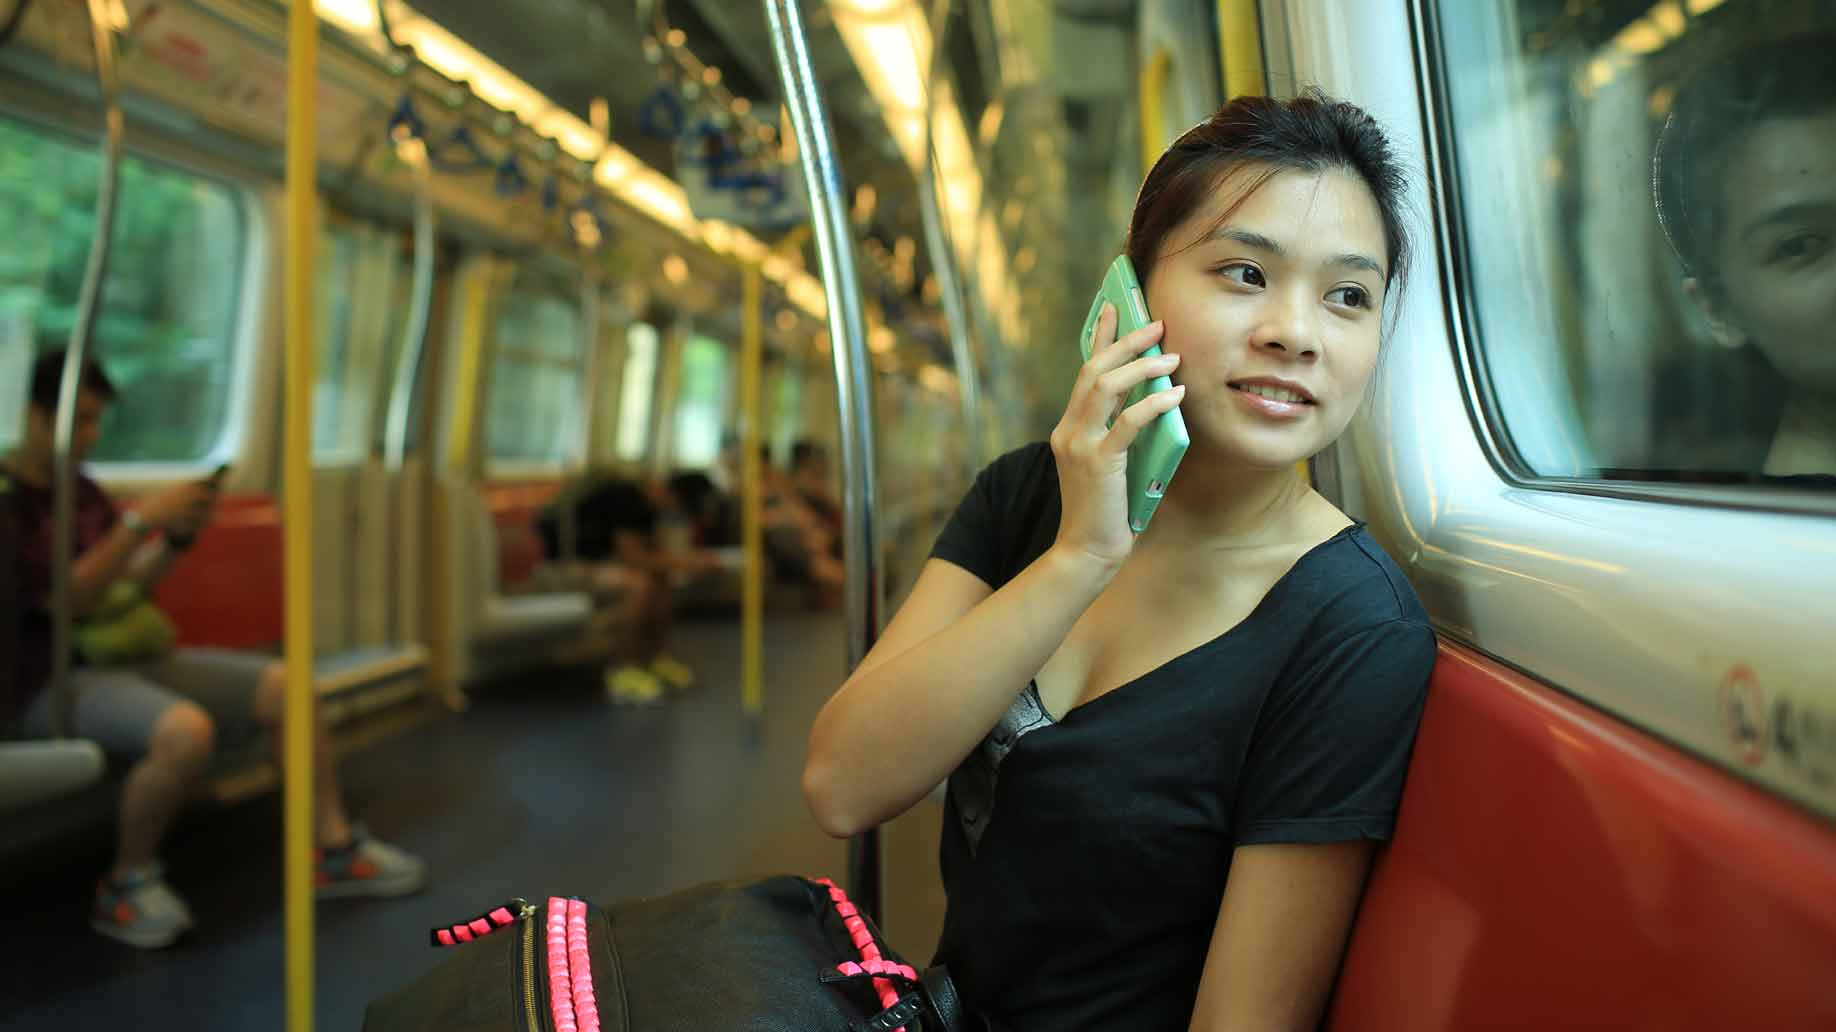 woman on phone riding the subway